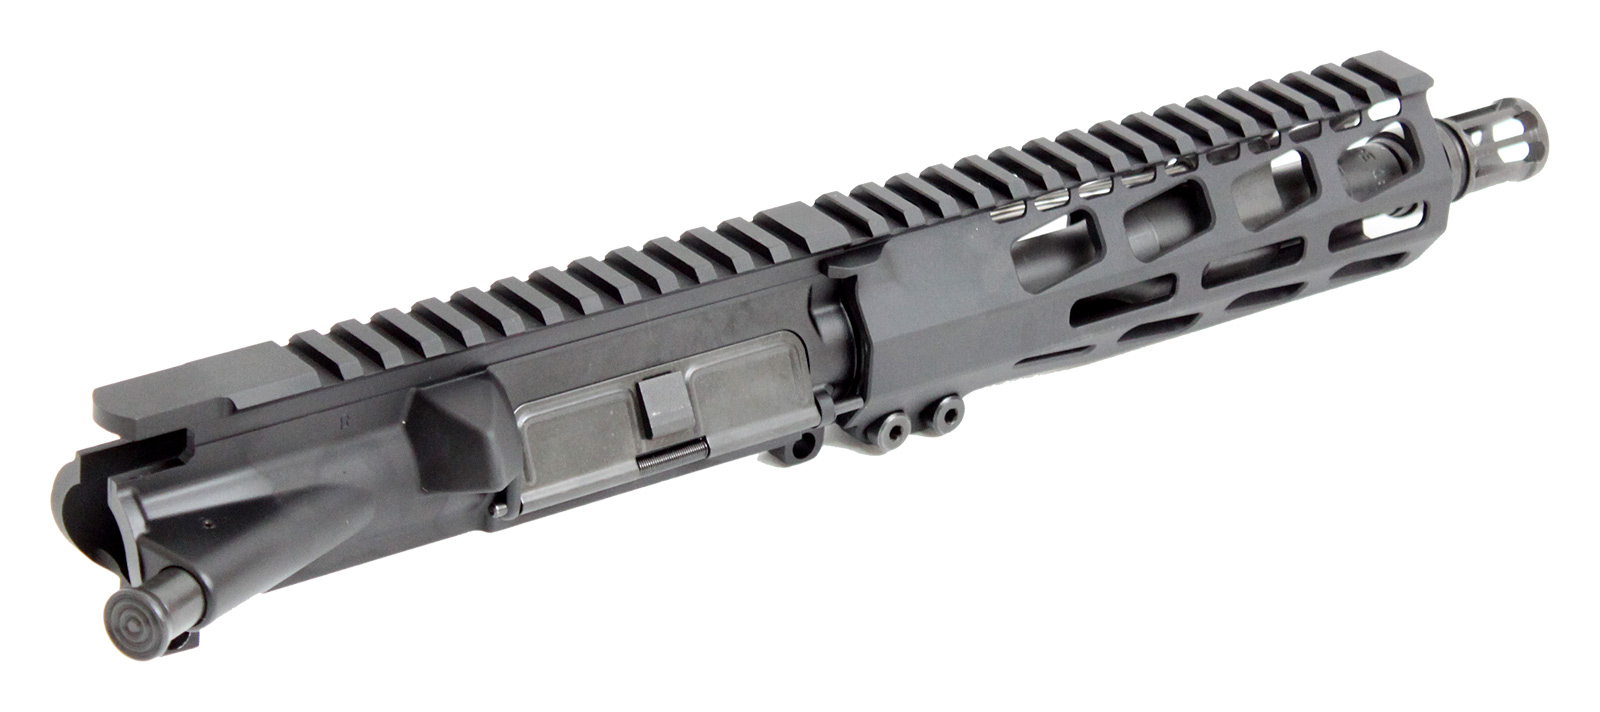 ar15-upper-assembly-7-5-inch-223-wylde-17-160028-2